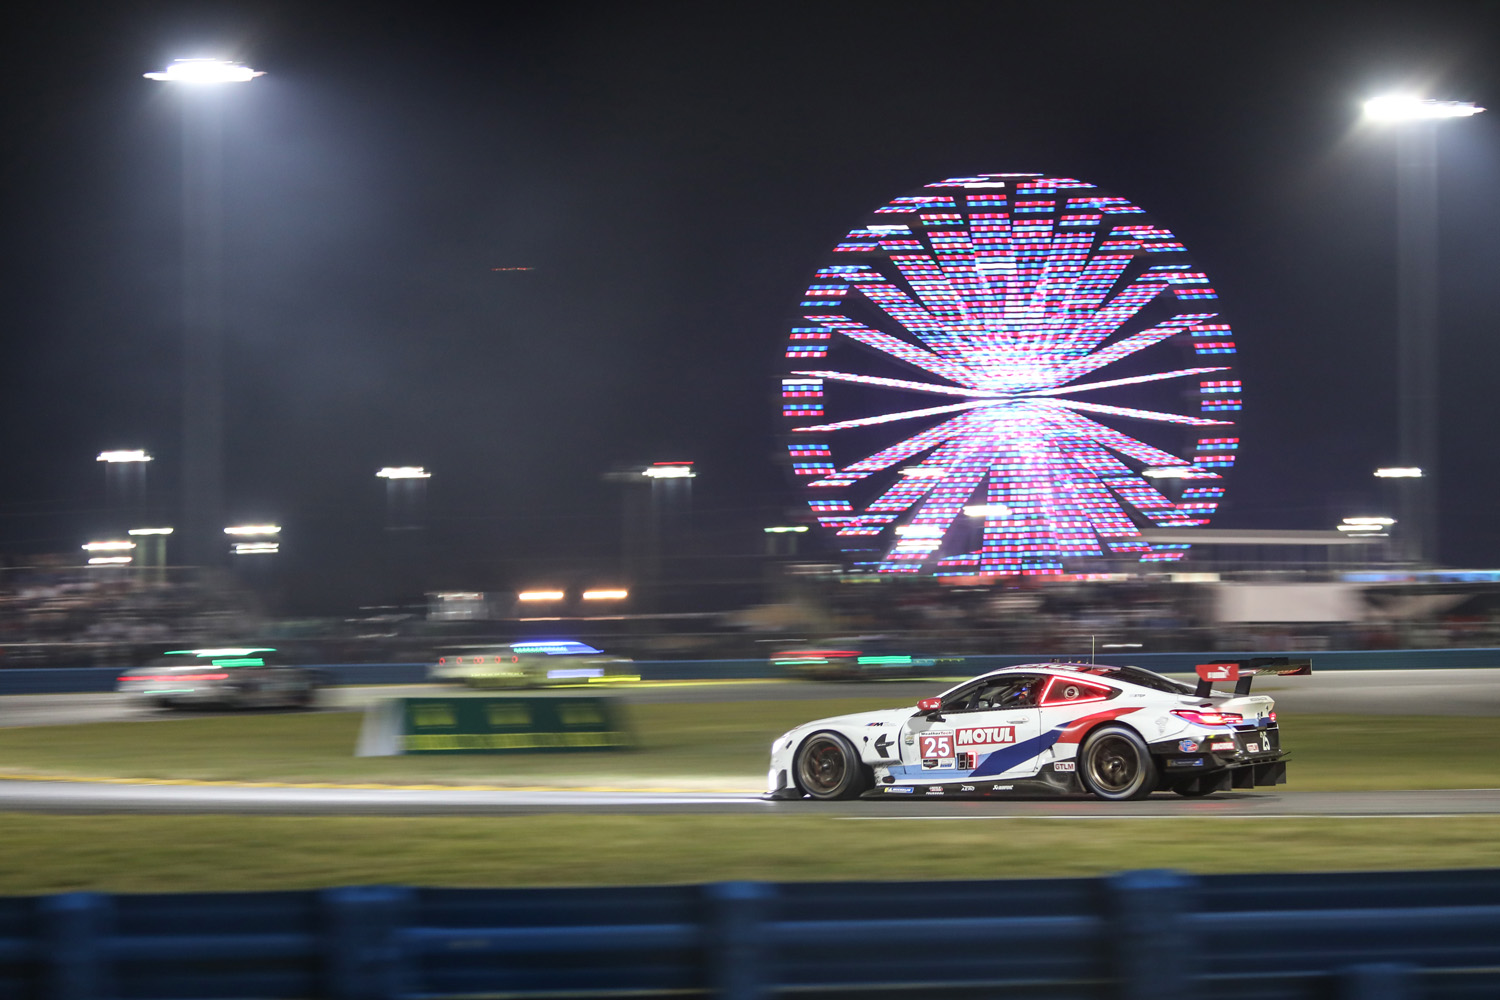 2020 Rolex 24 Daytona BMW Ferris Wheel